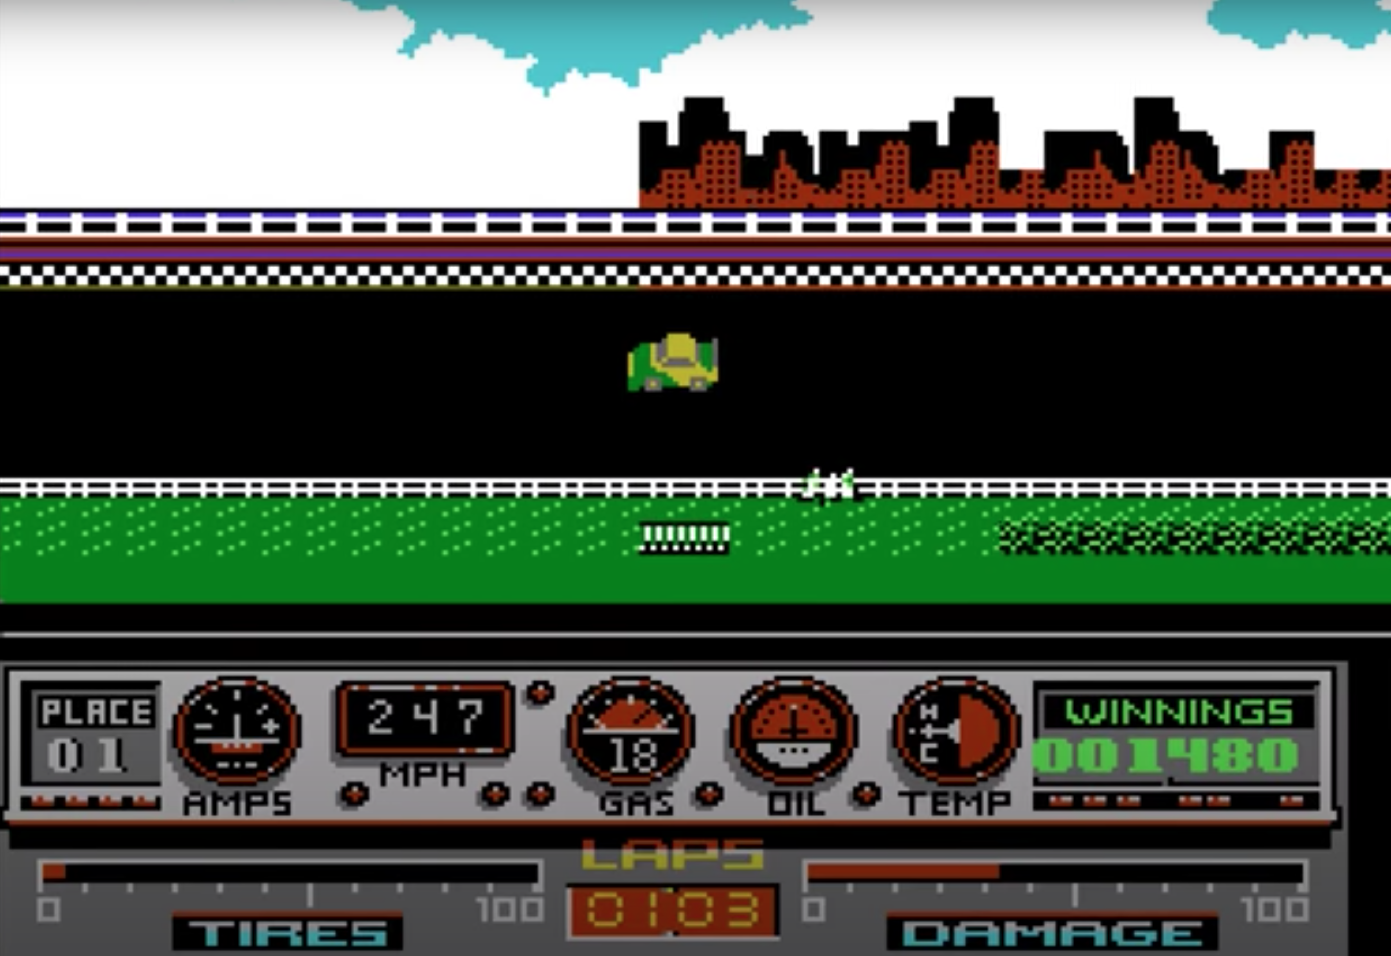 Unreleased Days of Thunder NES game